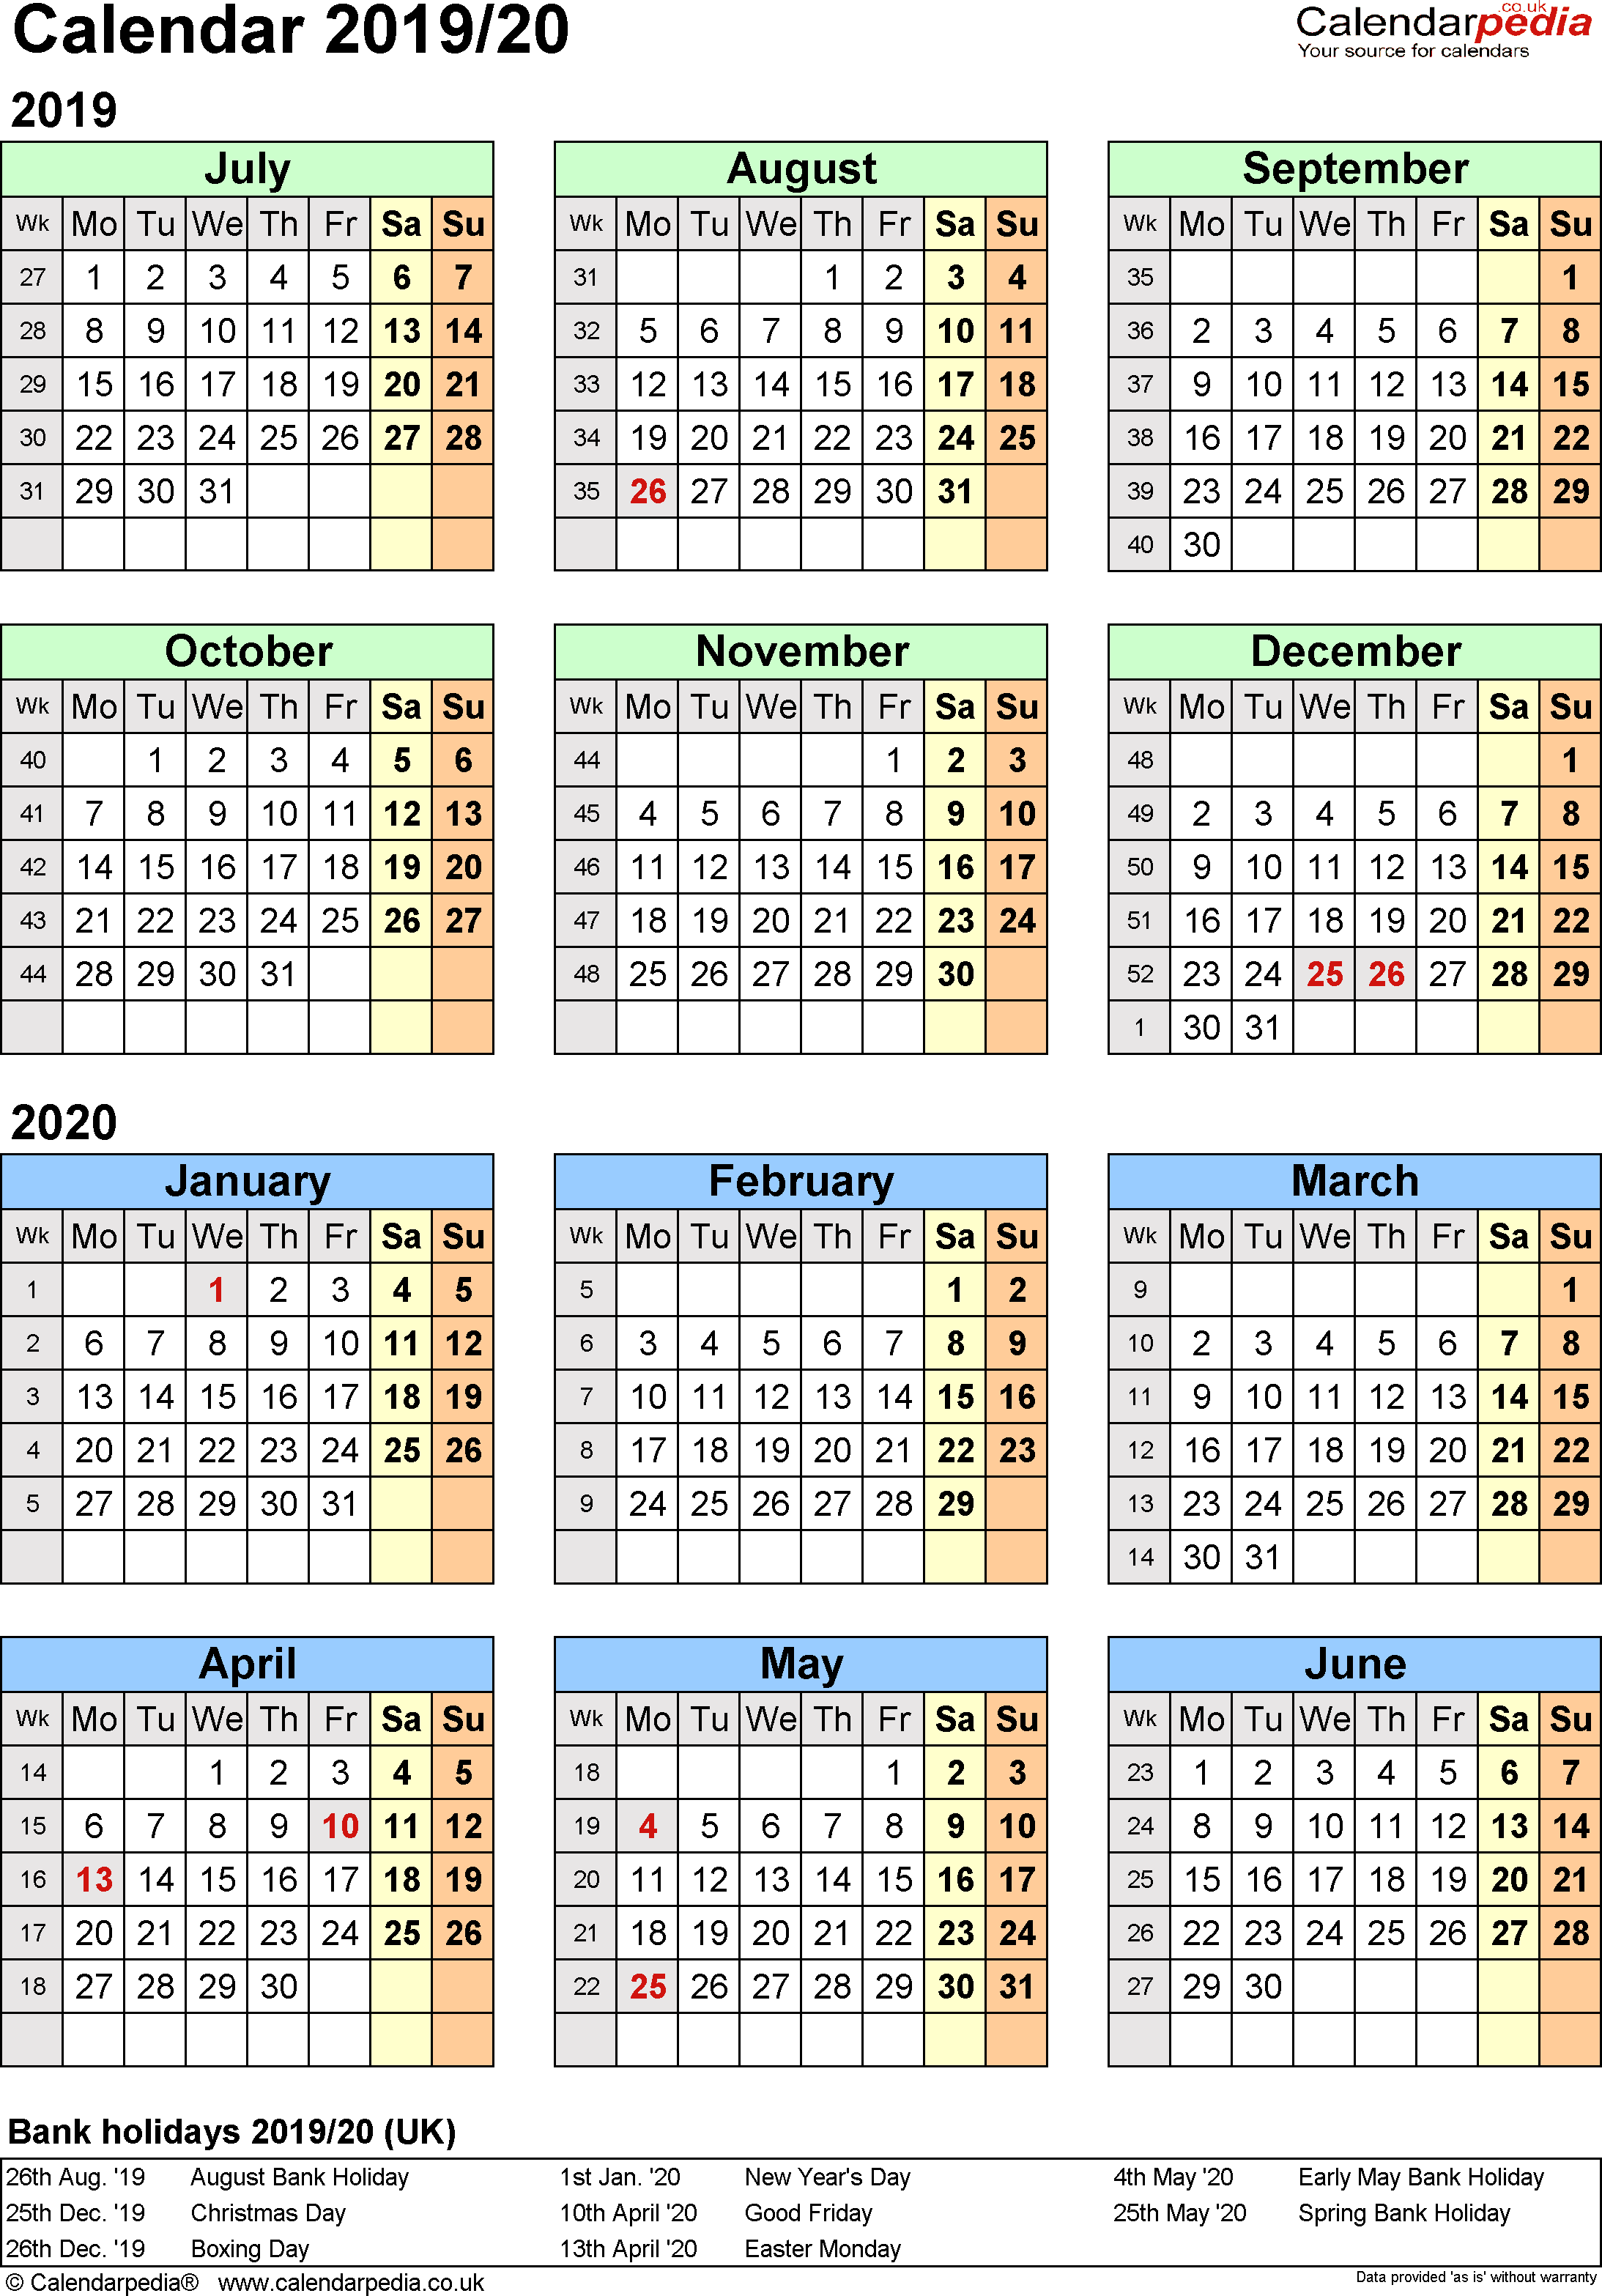 Template 2: PDF template for split year calendar 2019/2020 (portrait orientation, 1 page, A4)